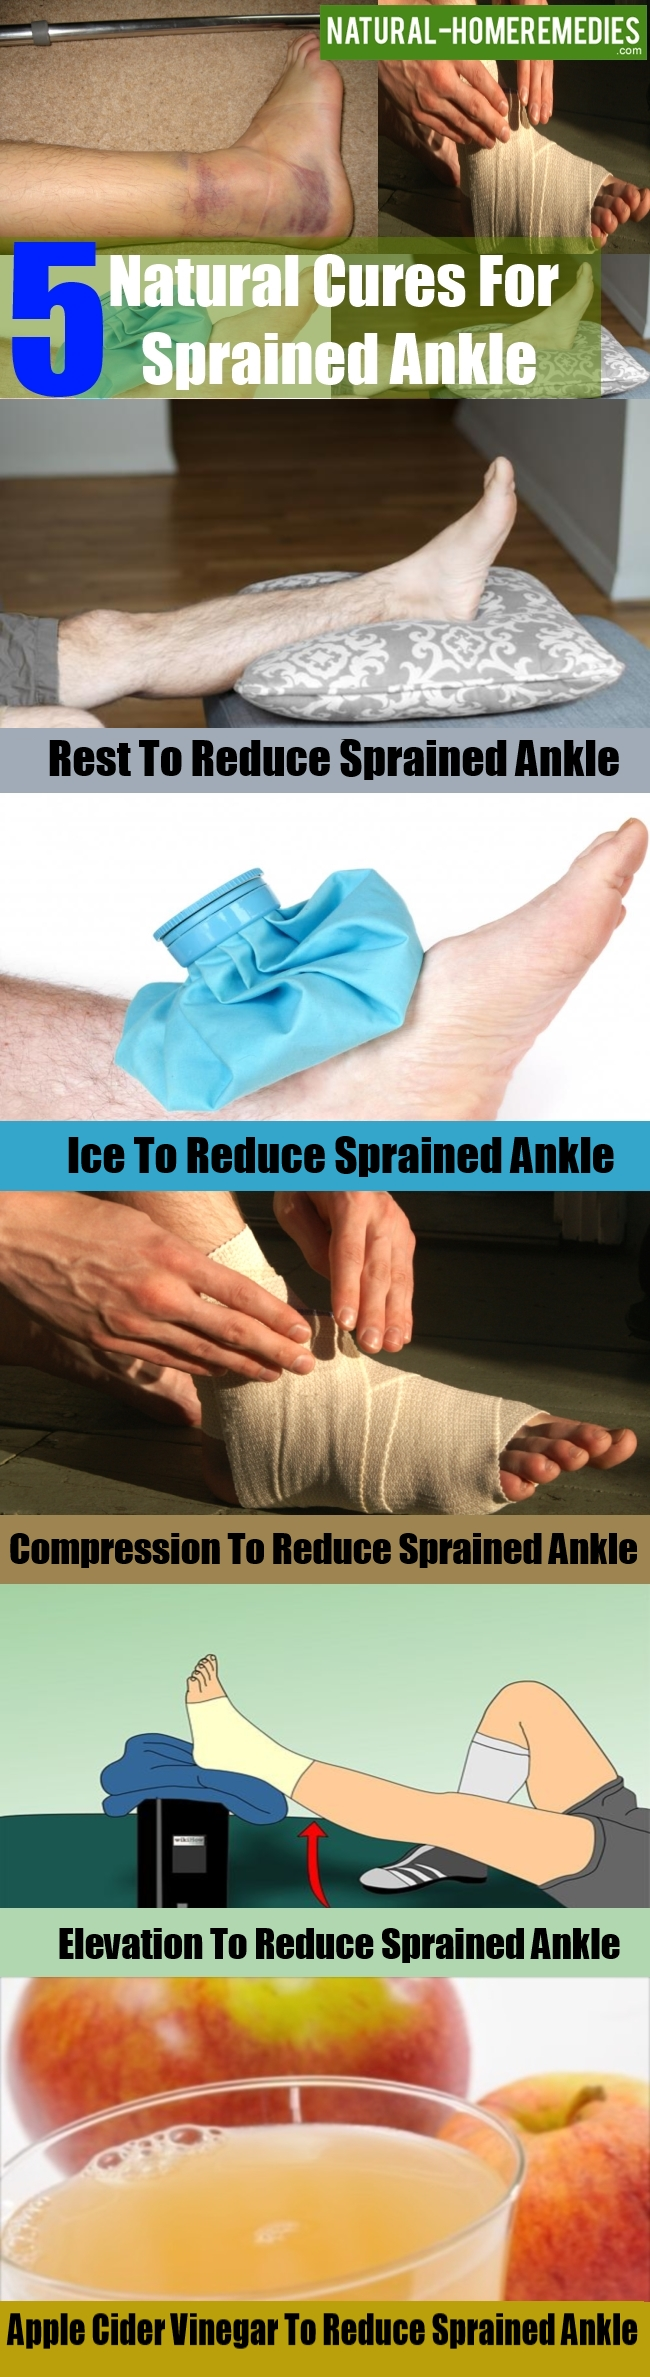 Natural Cures For Sprained Ankle